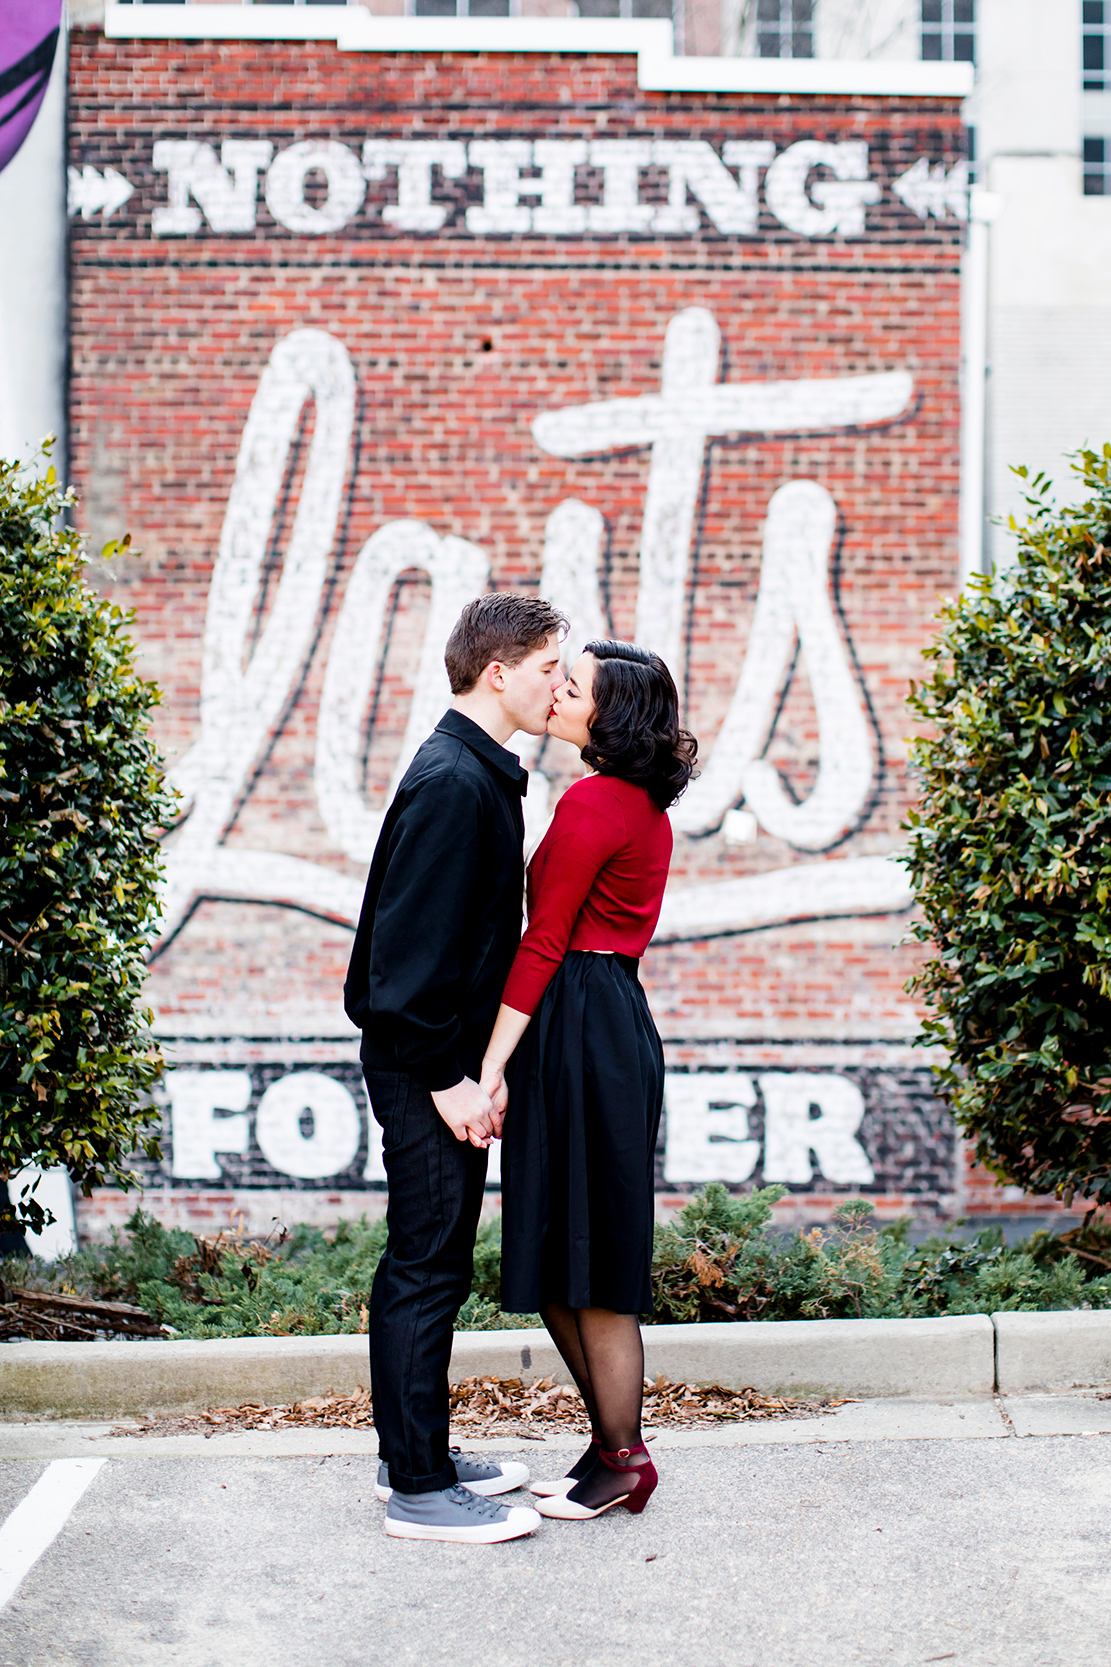 1950s Inspired Styled Couples Shoot - Image Property of www.j-dphoto.com